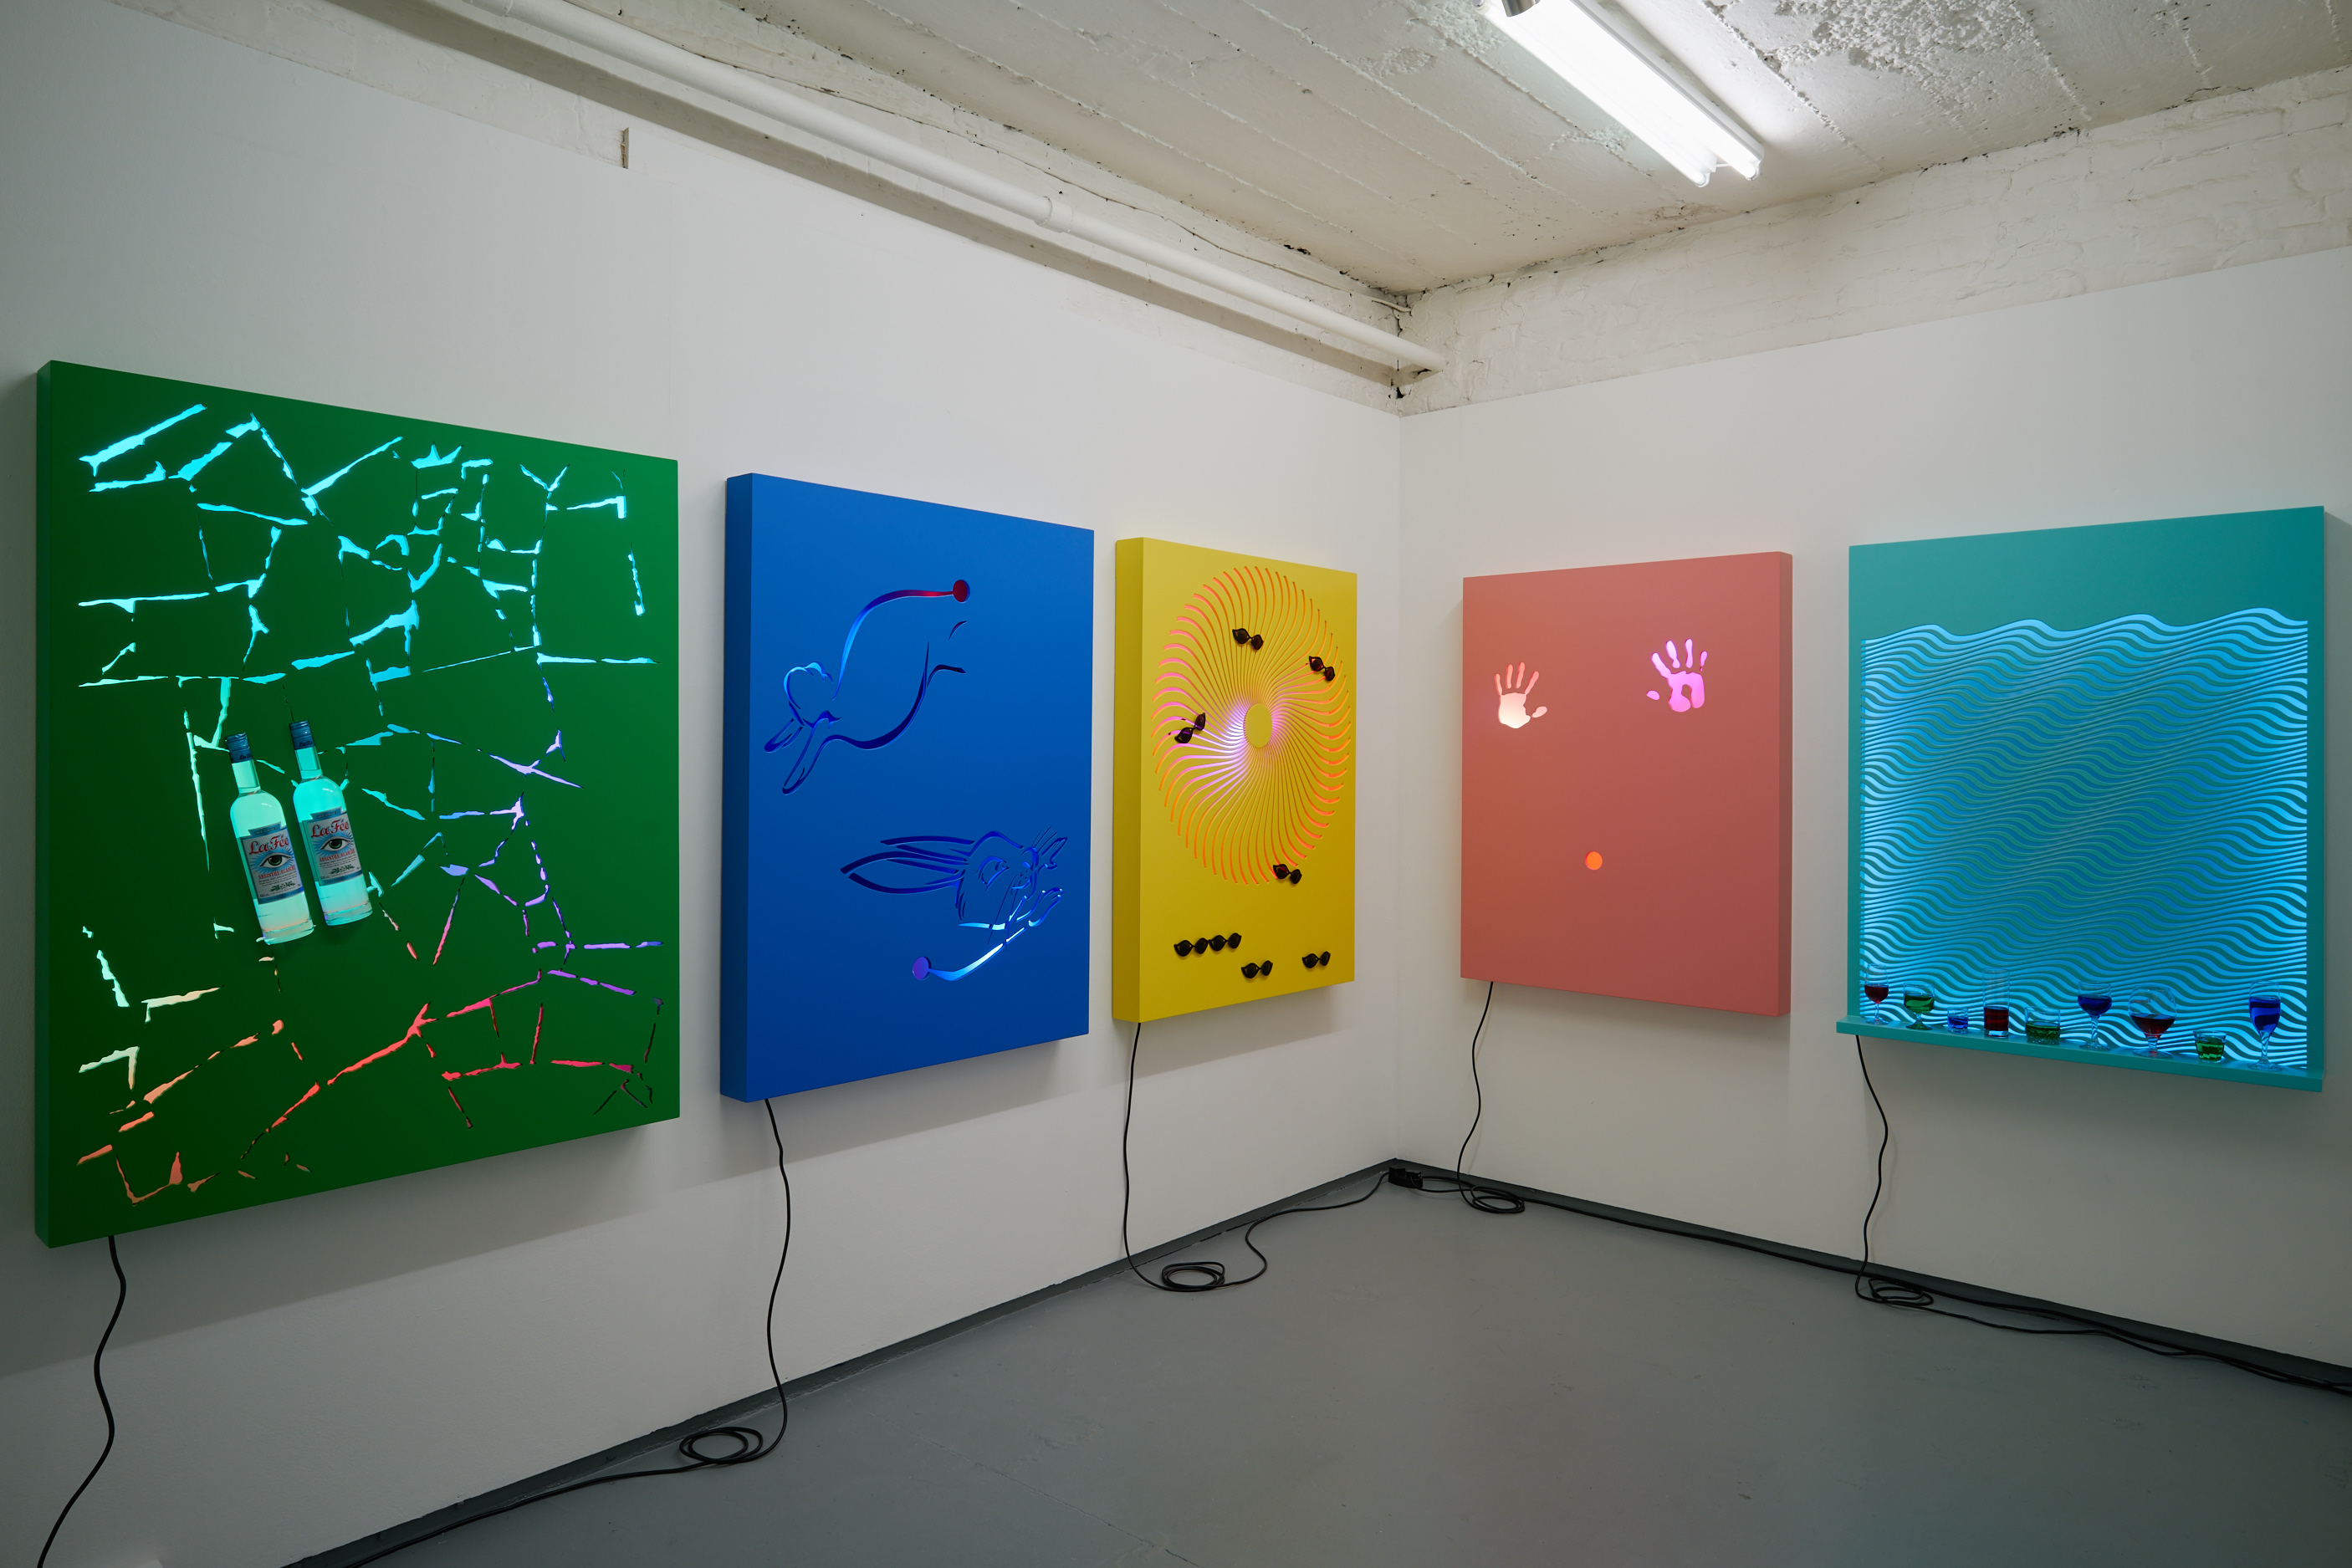 David Ferrando Giraut, Vortex series, 2015. Installation view